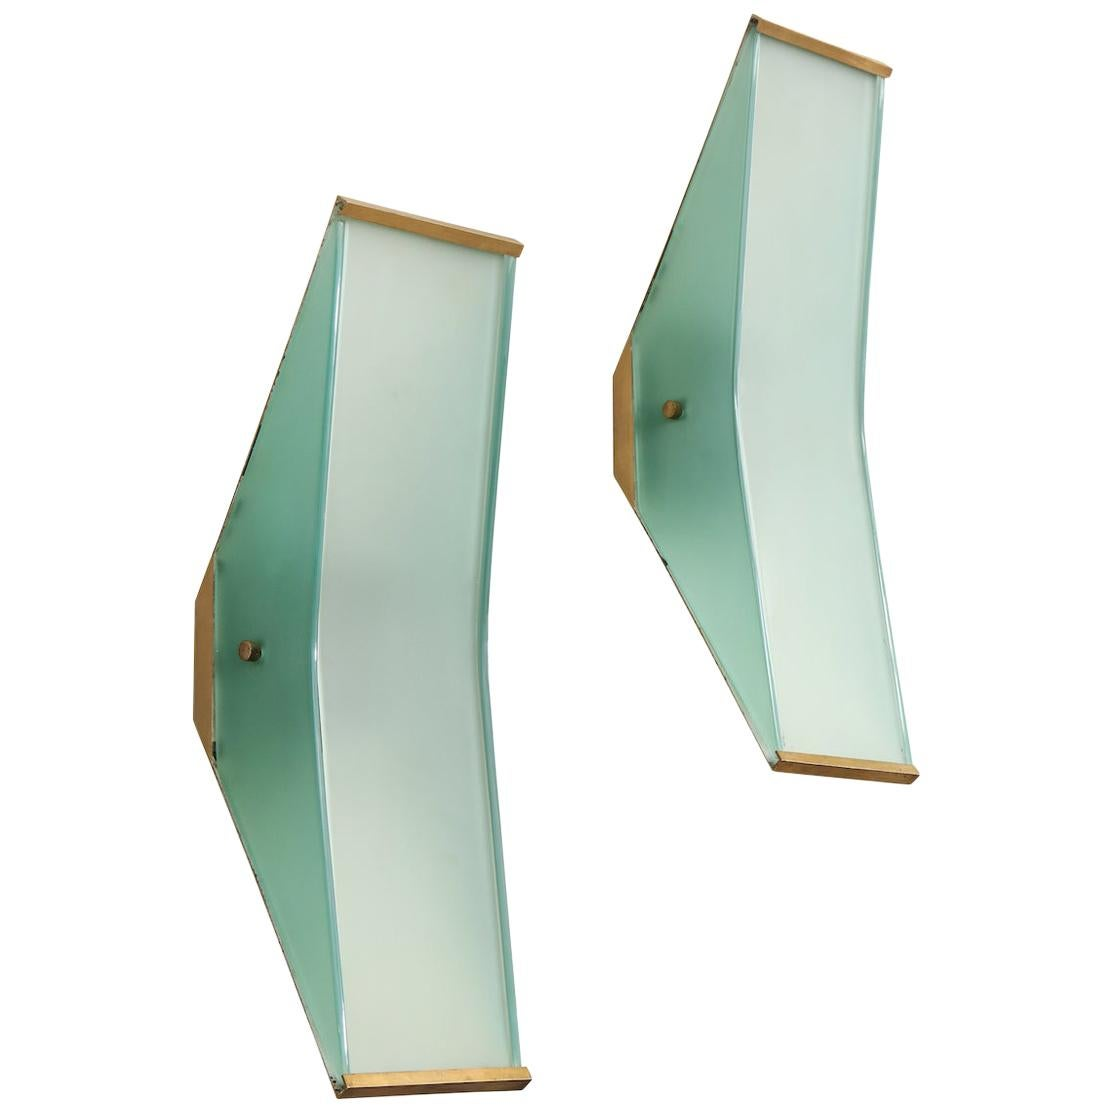 Max Ingrand for Fontana Arte Sconces